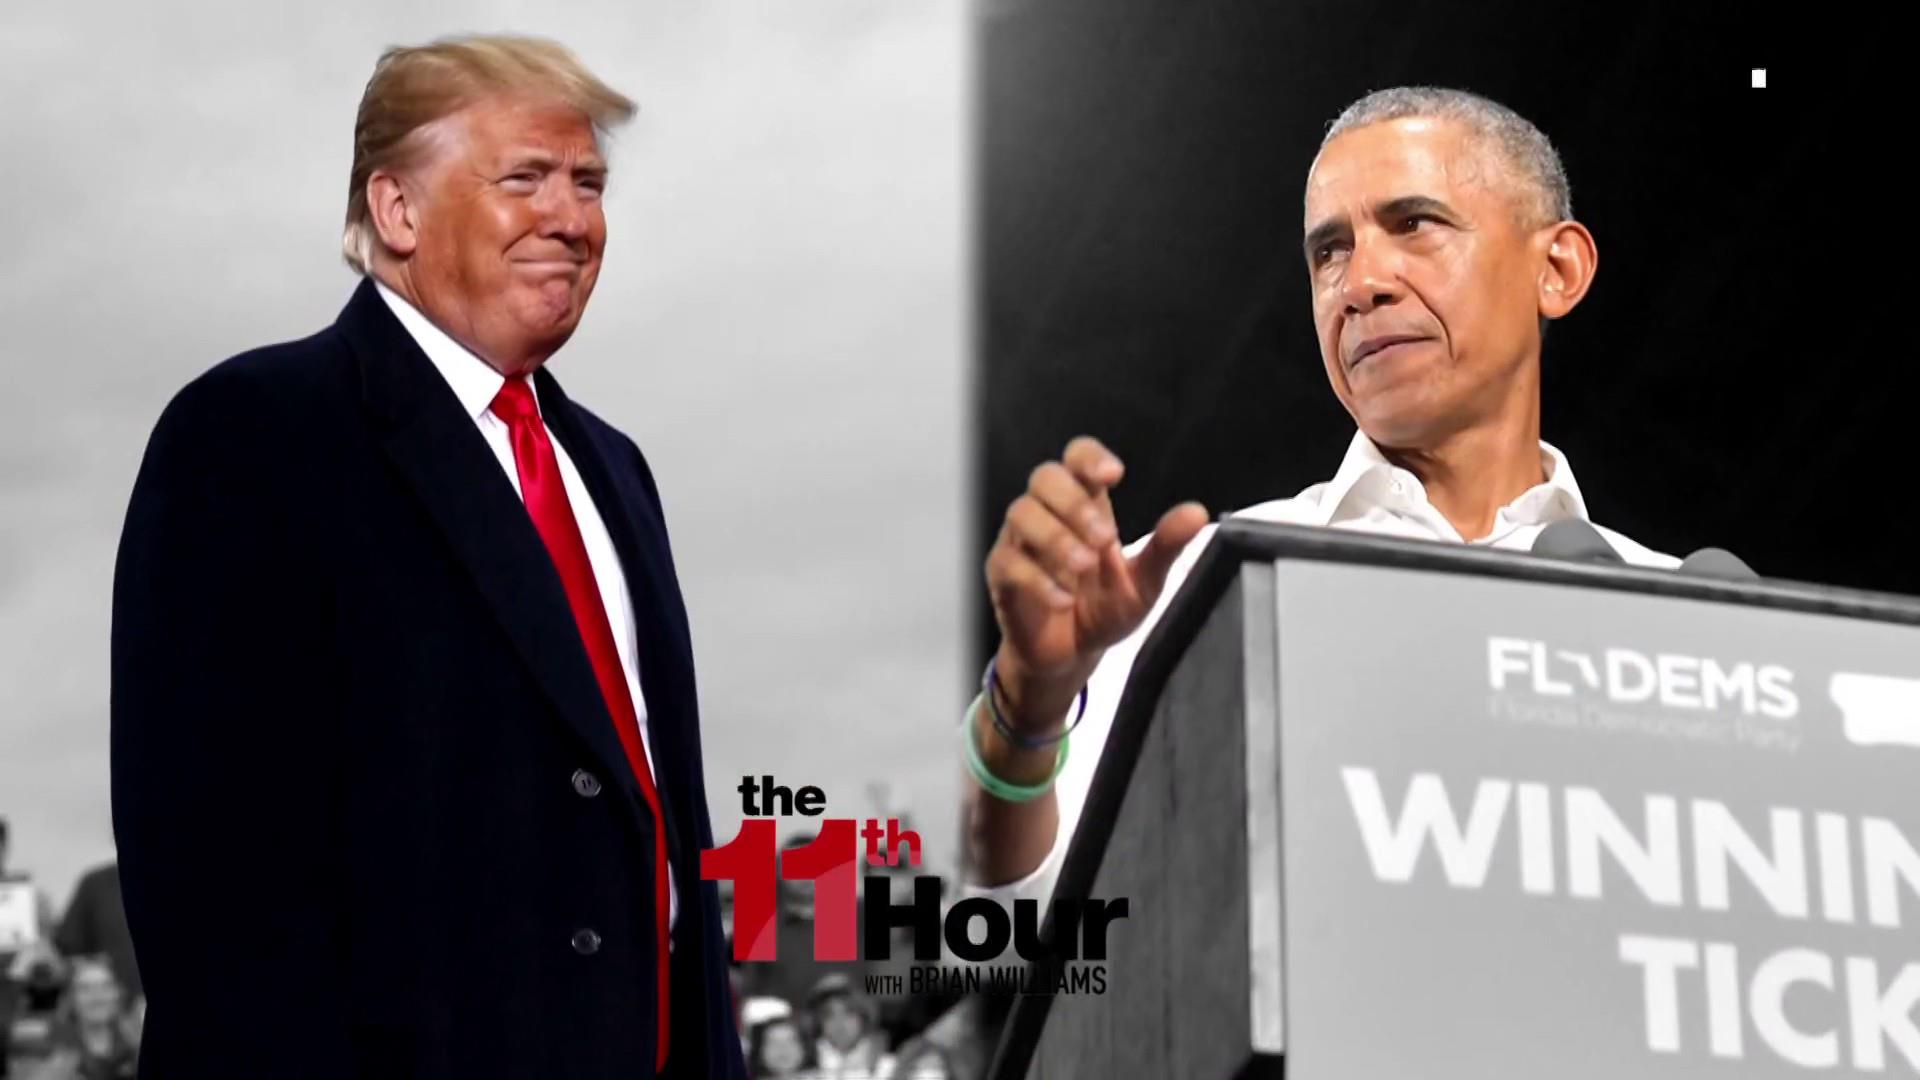 Two presidents go head-to-head before Election Day